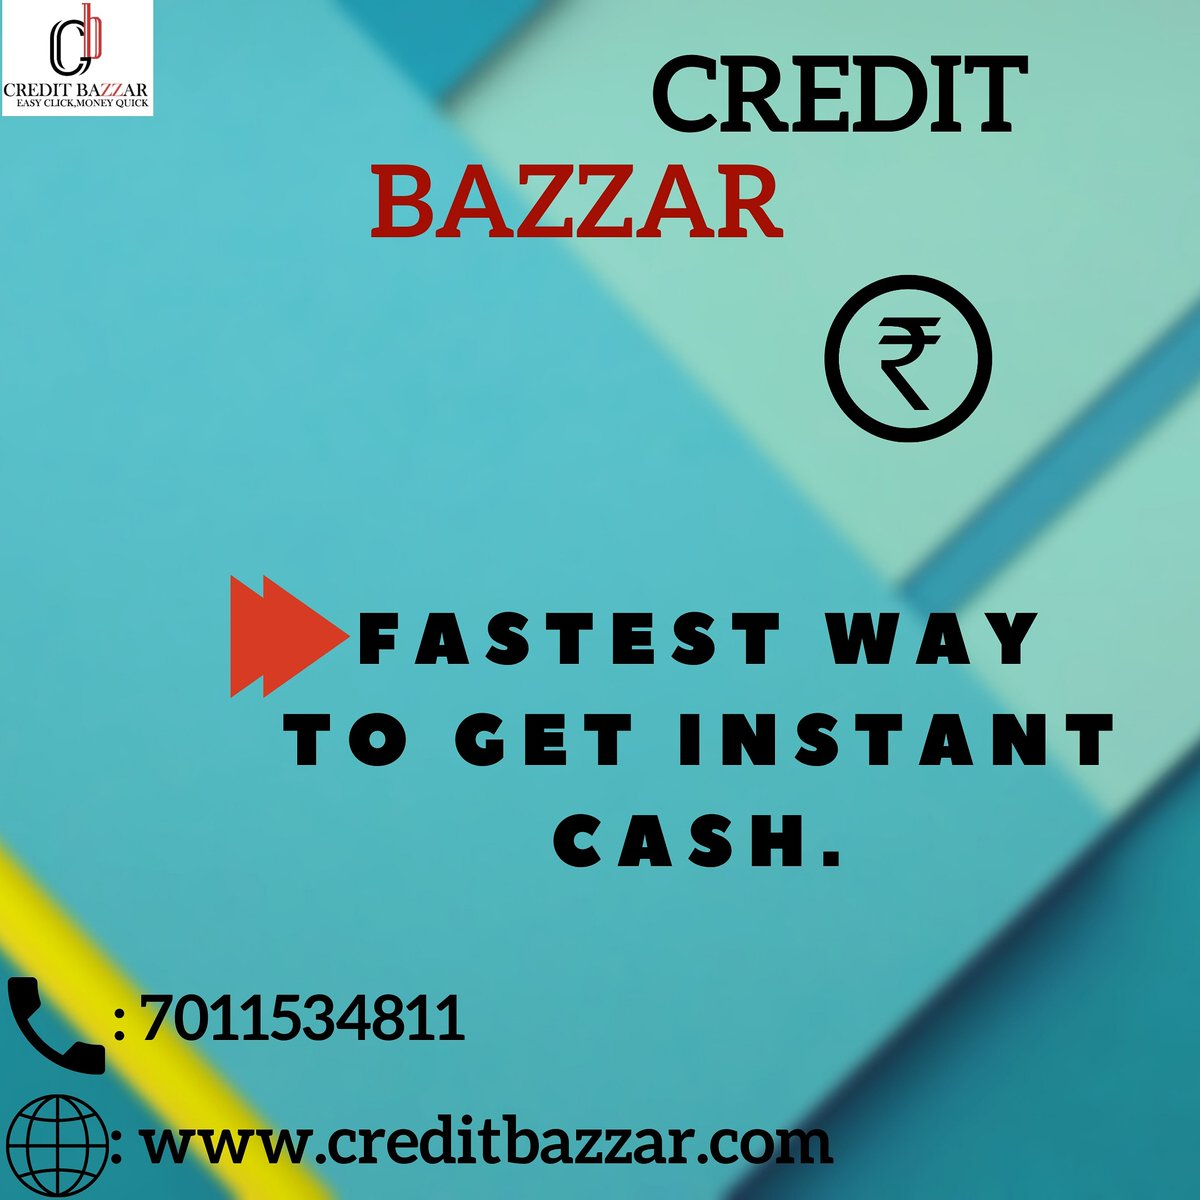 No Loan Can Be Faster than this. Apply Now: https://t.co/GznDHHWlnn . . . #loans #finances #instaloan #Cash #money #CoronavirusIndia #PayDay #instantloan #financialplanning #FinancialServices #India #Delhi https://t.co/yLy00AeakB